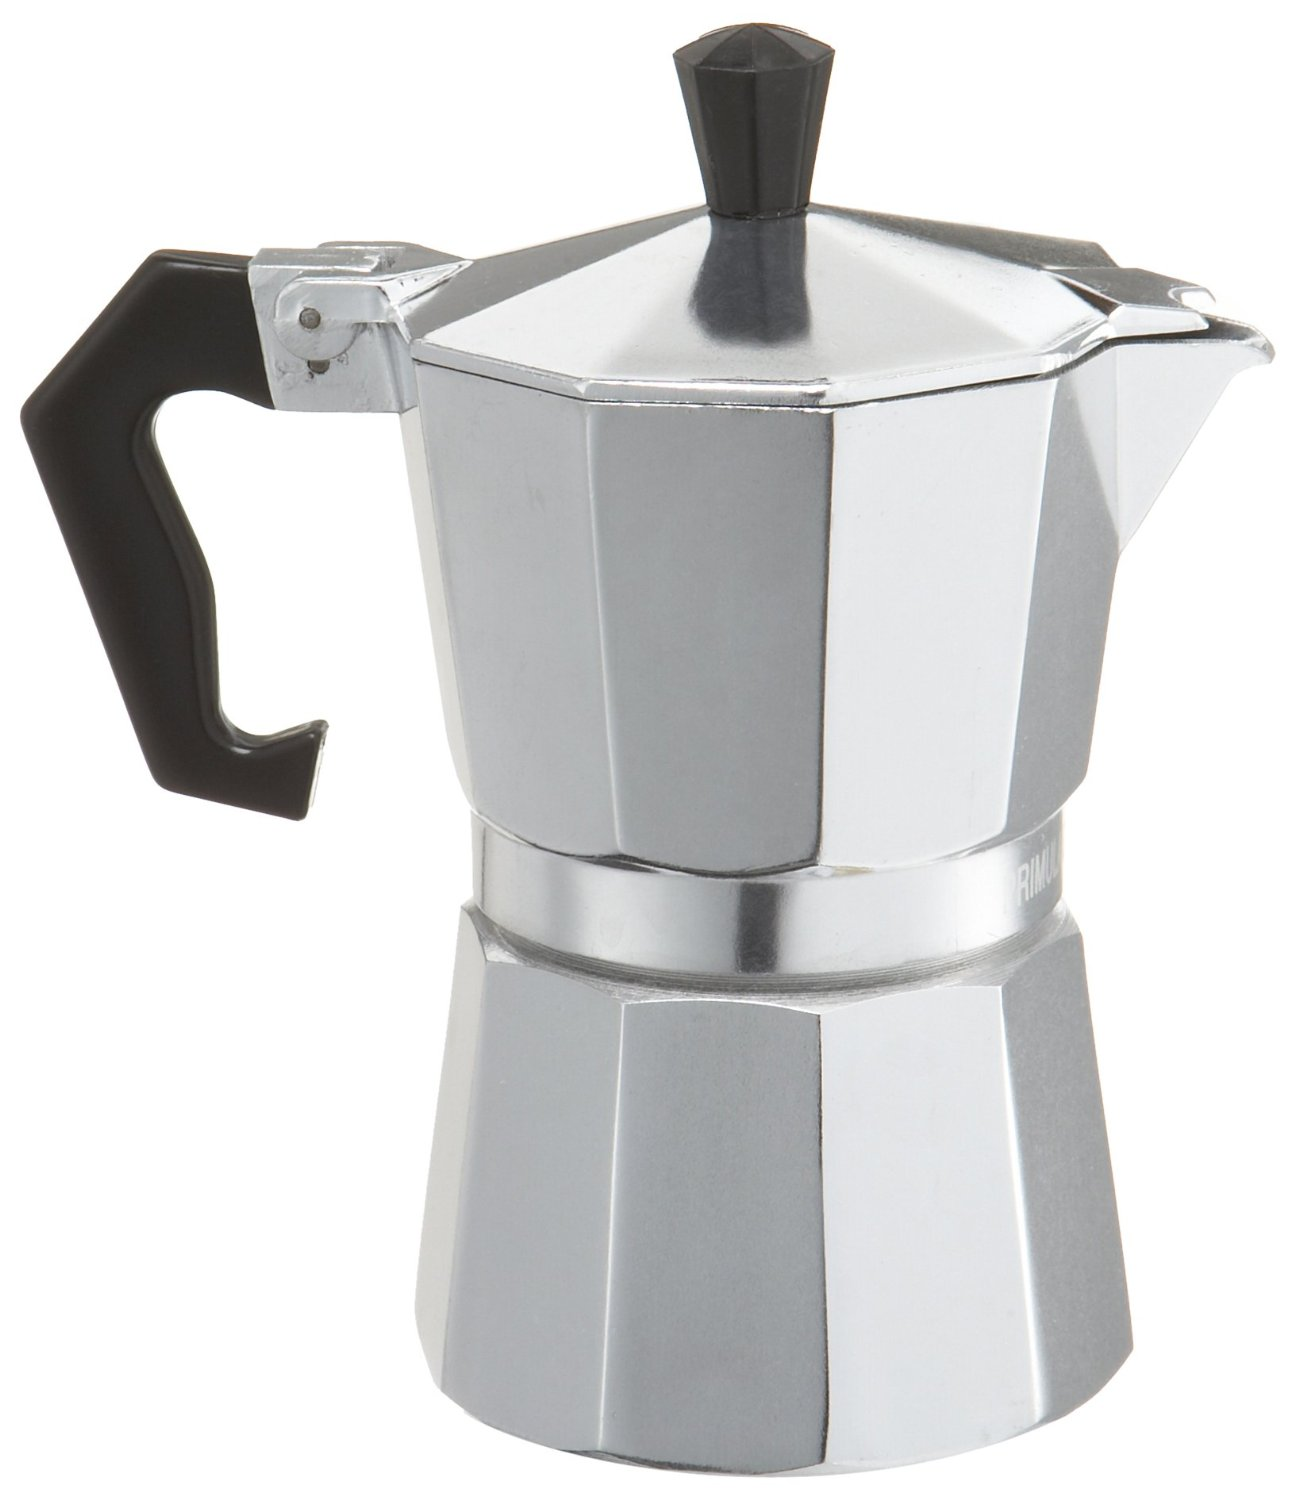 Primula Aluminum 3 Cup Stovetop Espresso Maker Latte Mocha Coffee Pot New 8933